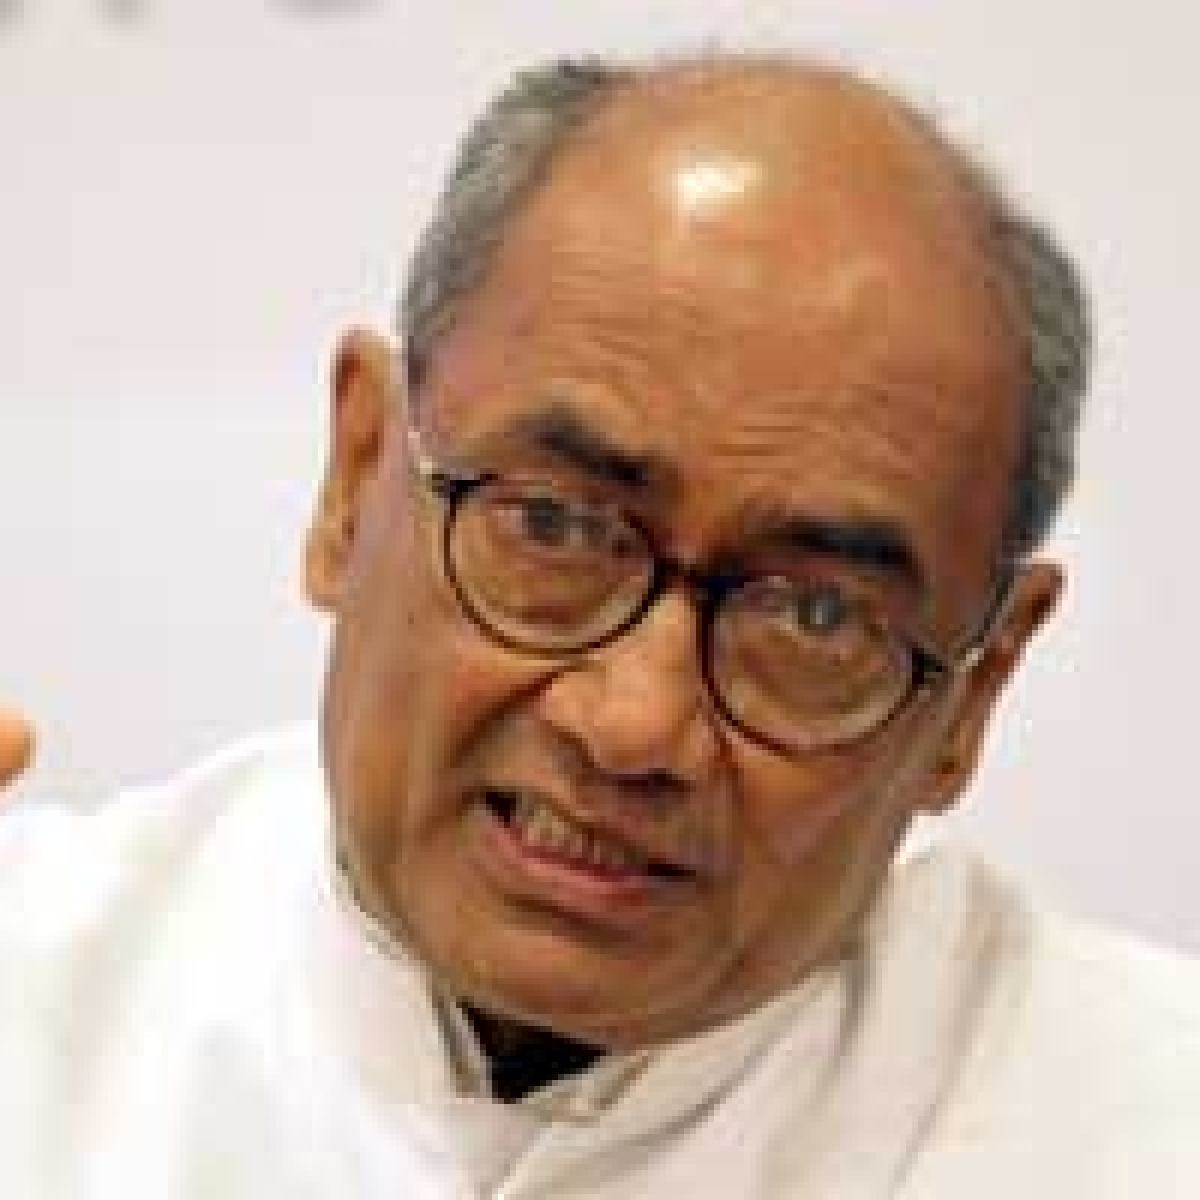 Bhopal: Digvijay asks when demolition perpetrators will be punished